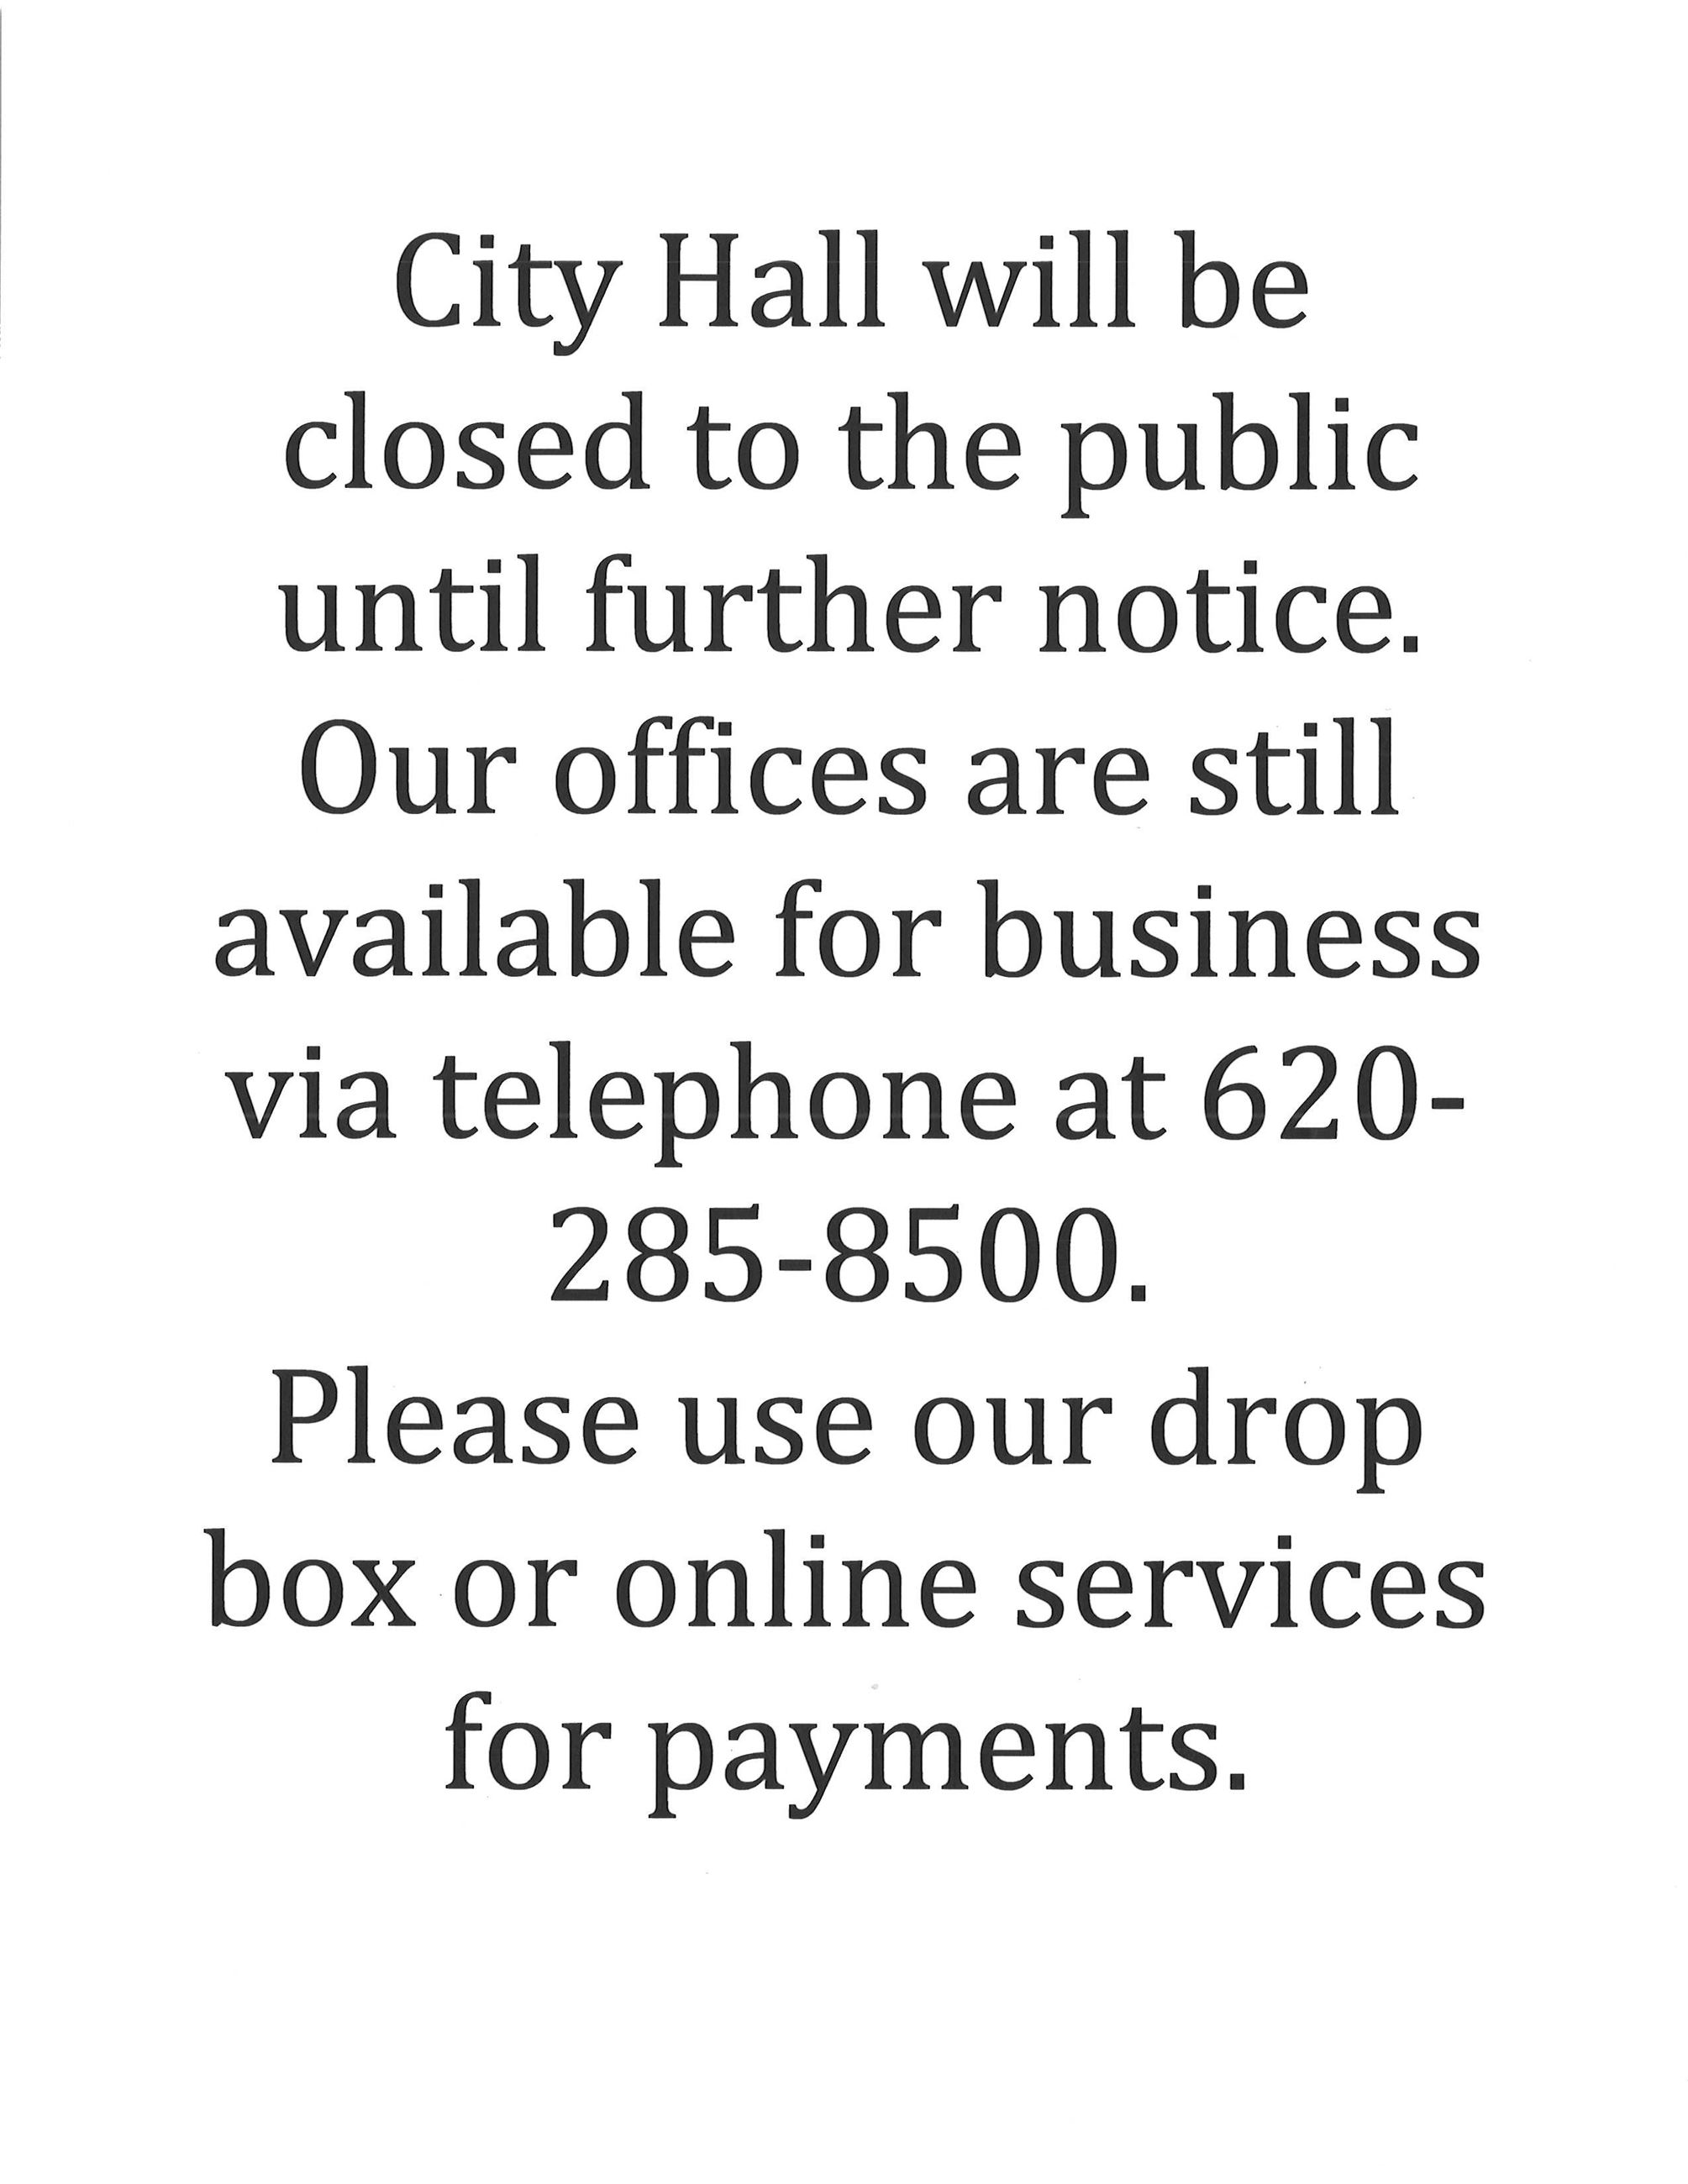 City office closed until further notice